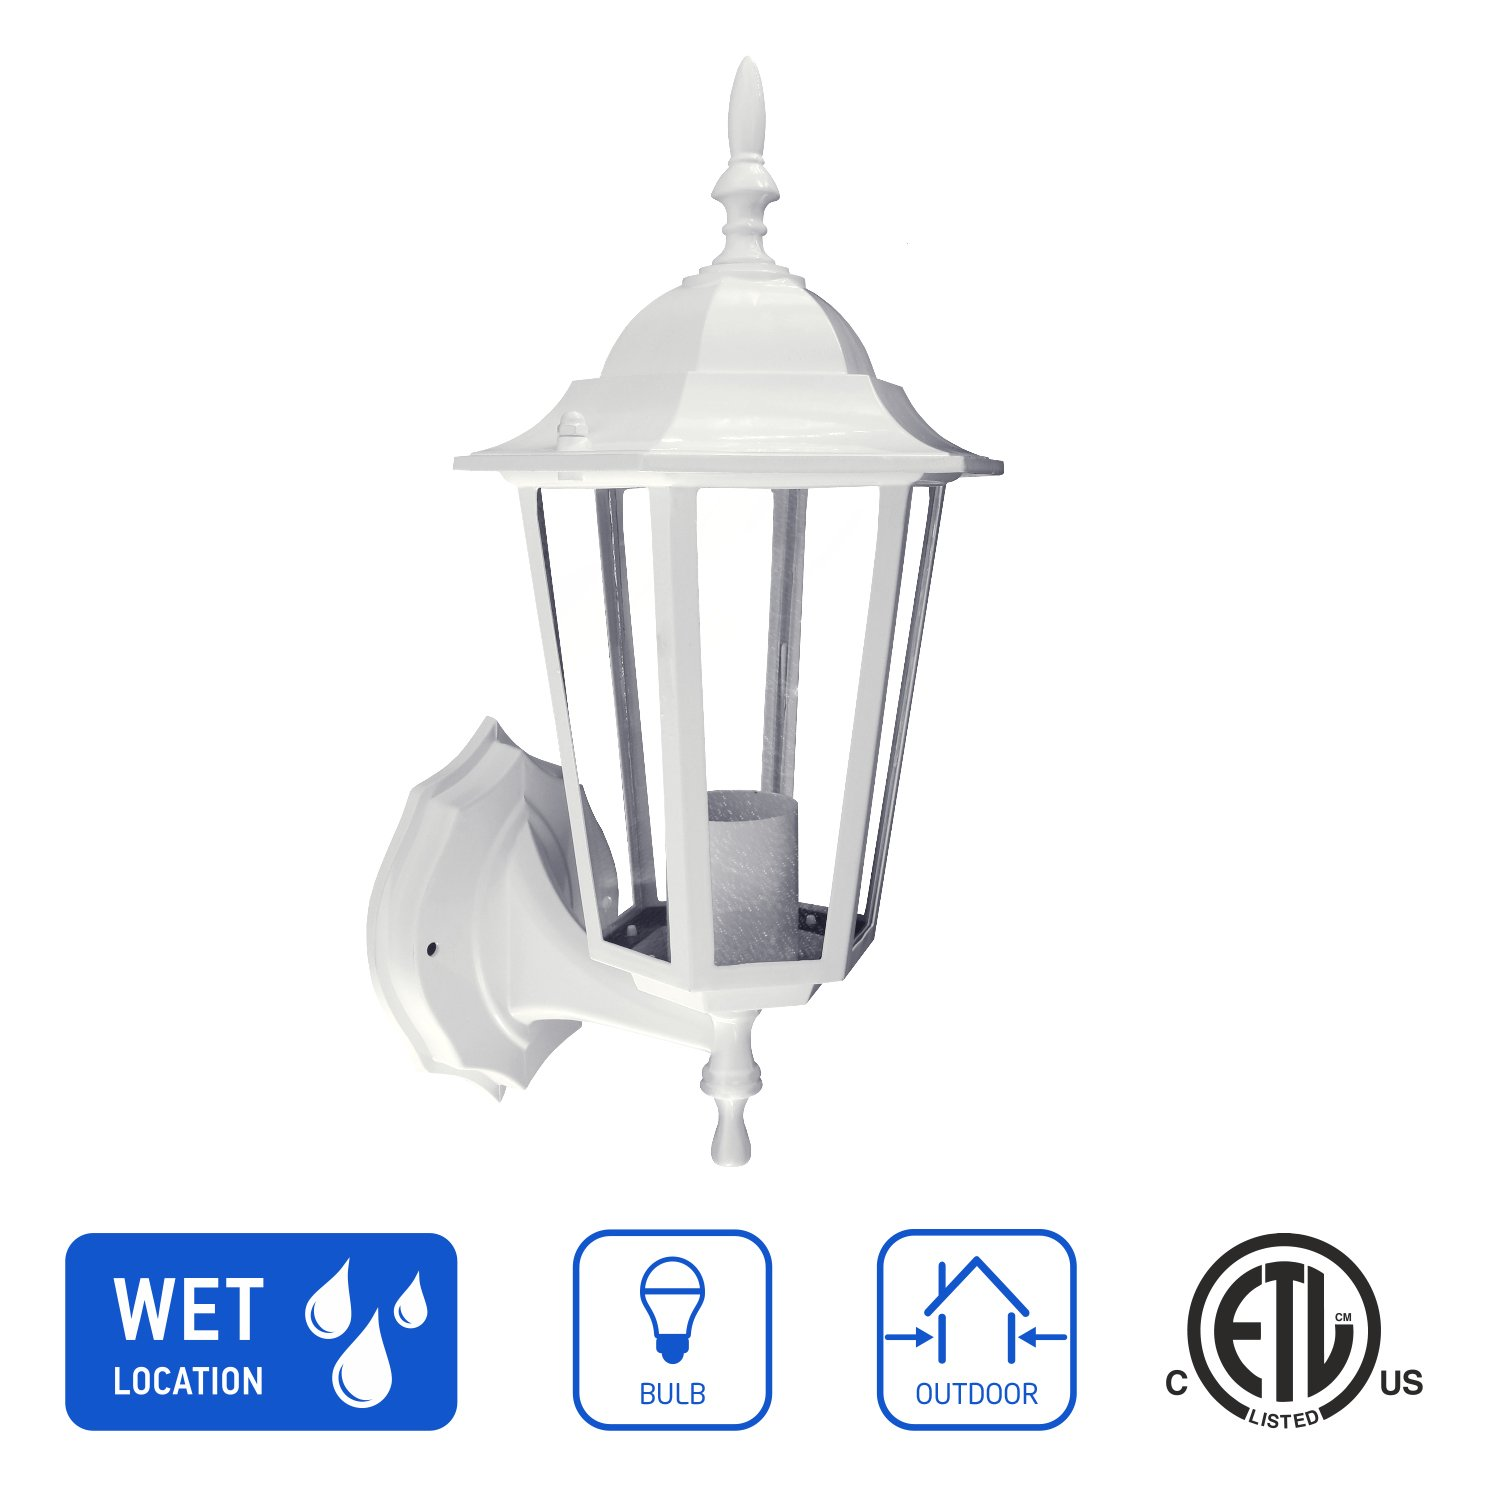 IN HOME 1-Light Outdoor Exterior Wall Up Lantern, Traditional Porch Patio Lighting Fixture L01 with One E26 Base, Water-proof, White Cast aluminum Housing, Clear Glass Panels, ETL Listed